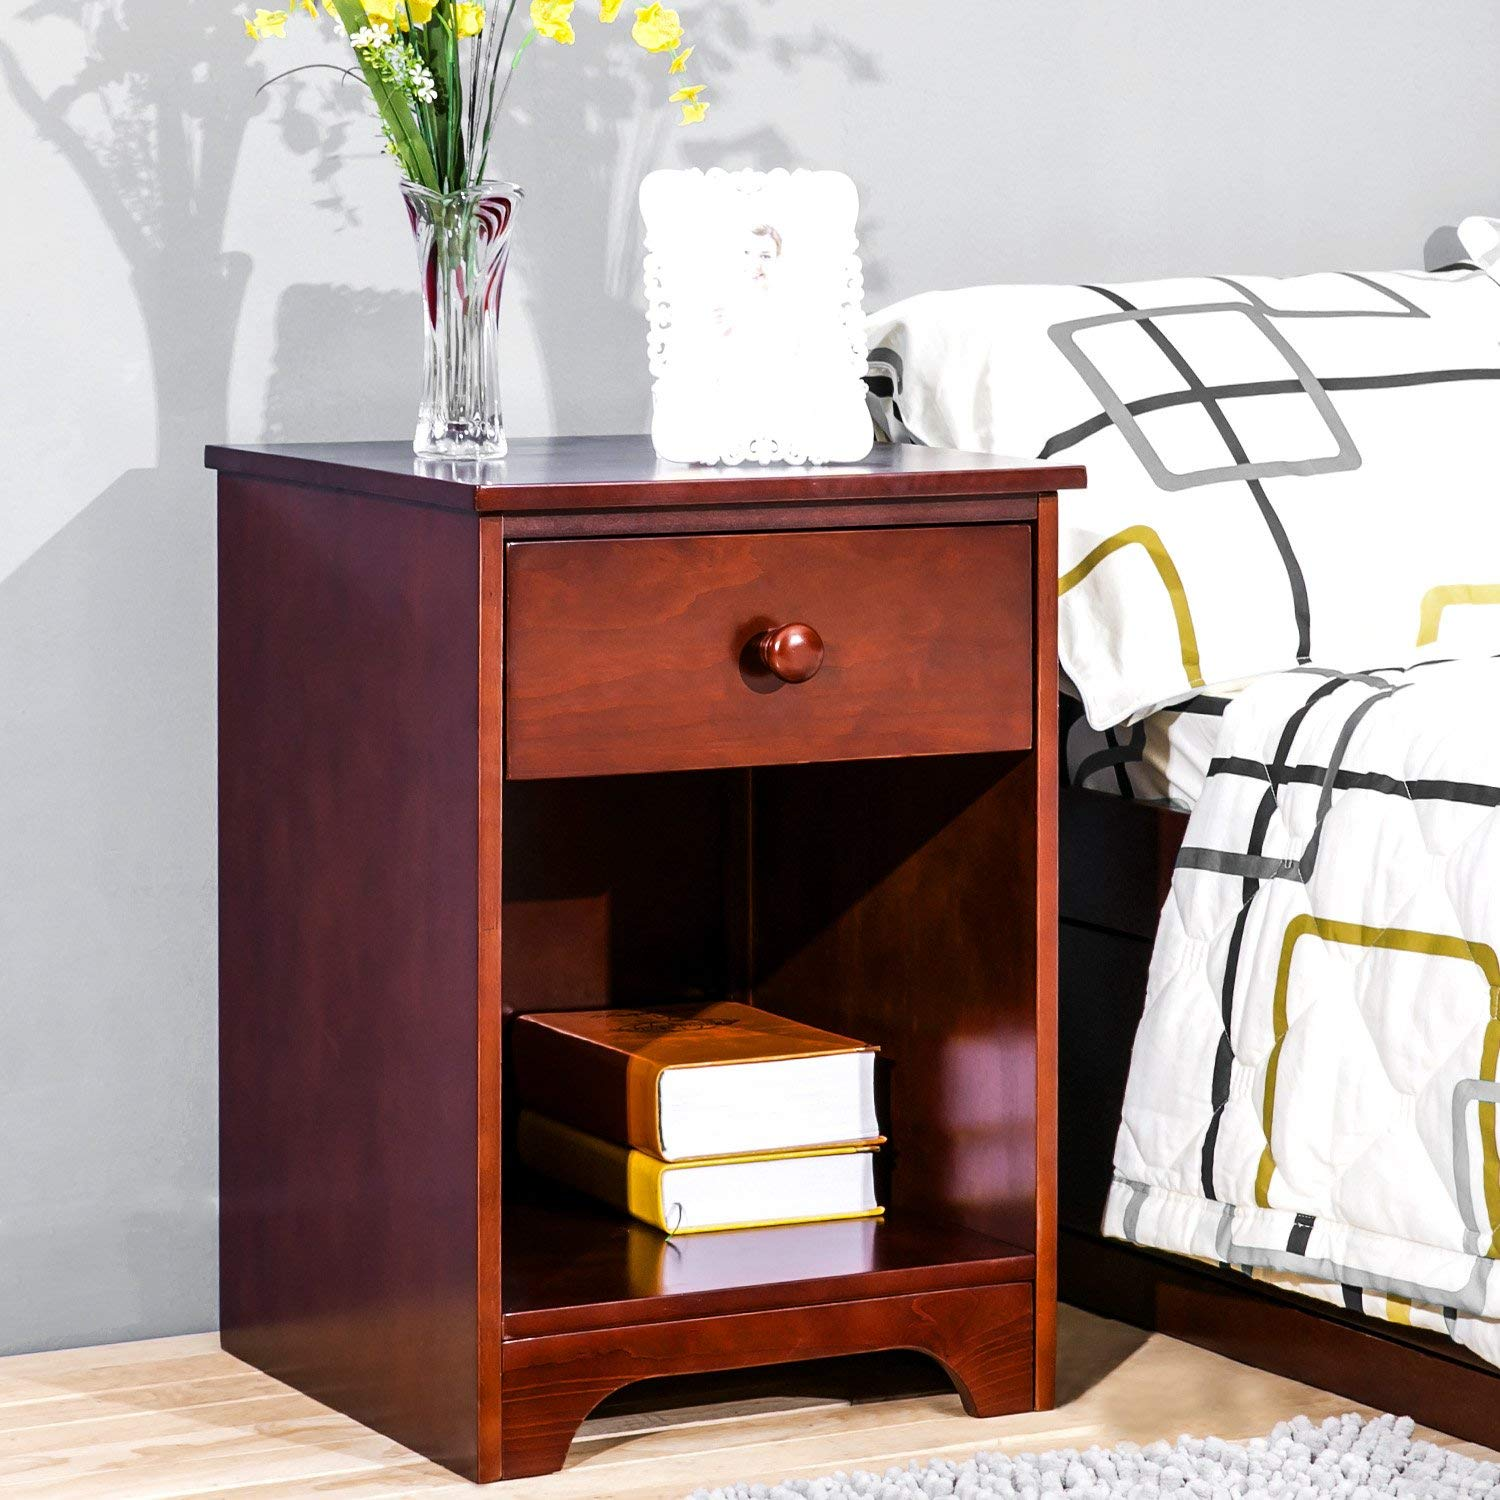 Wooden Accent Table Night Stand Beside Table with Storage Shelf and Drawer Nightstands for Bedrooms